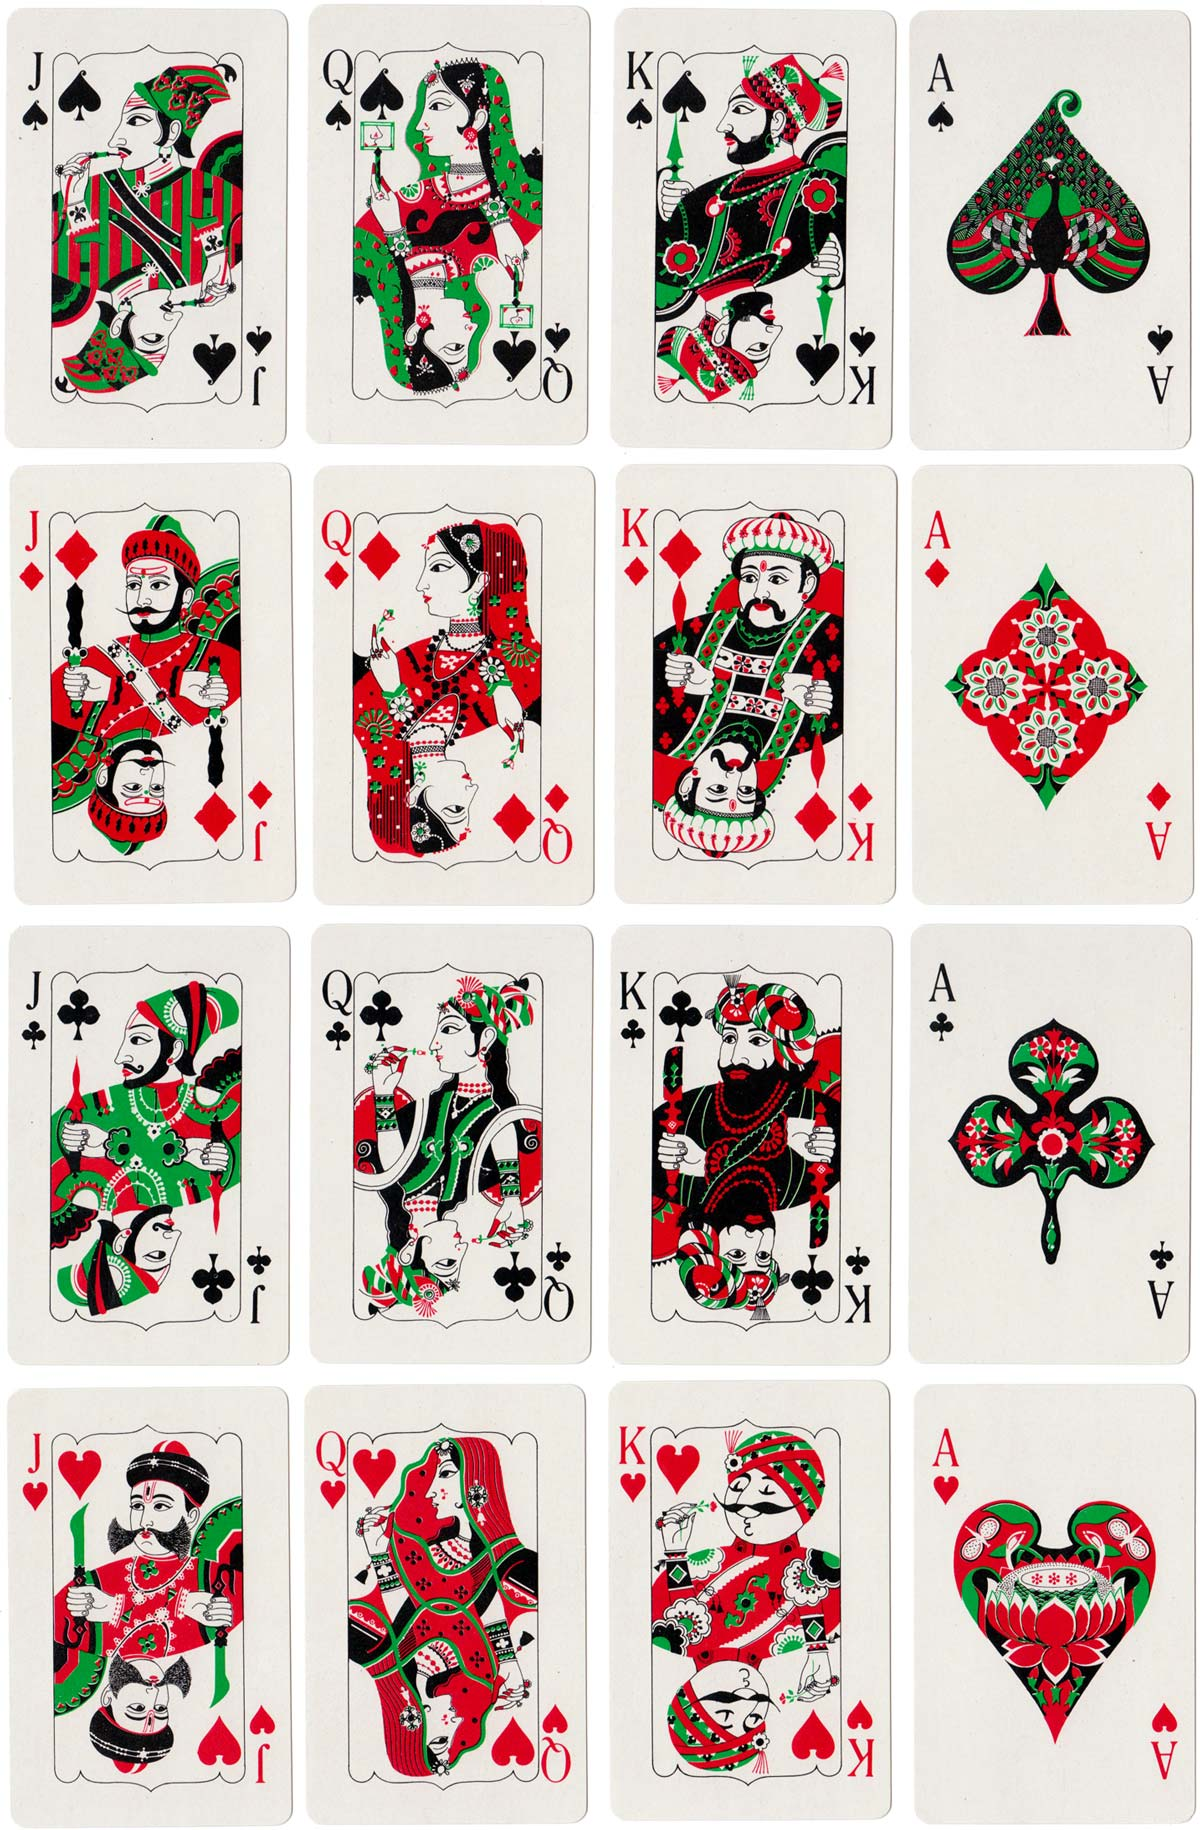 'Air India' playing cards, made in India by Playwell Playing Card Co., c.1980